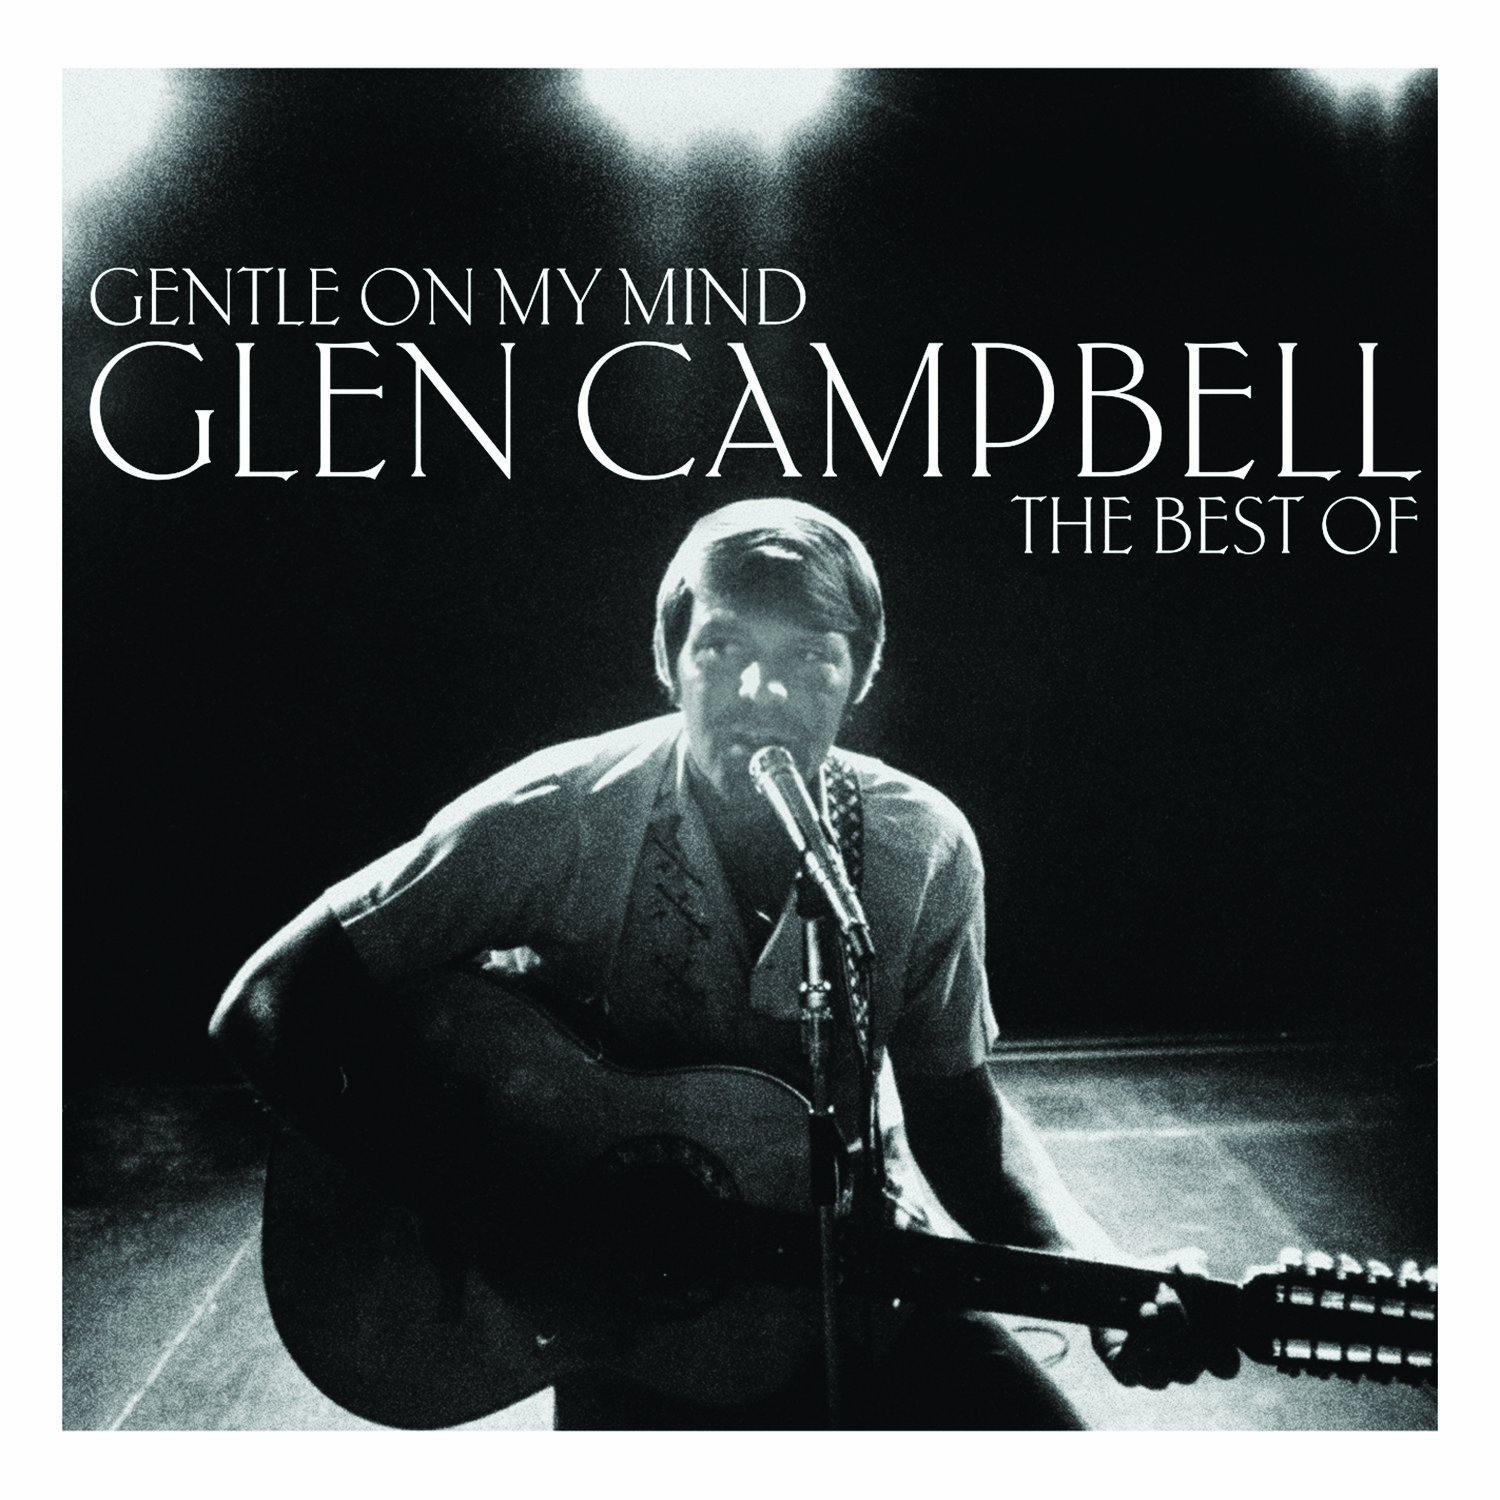 Glen Campbell Gentle On My Mind Photos Lbc9 News